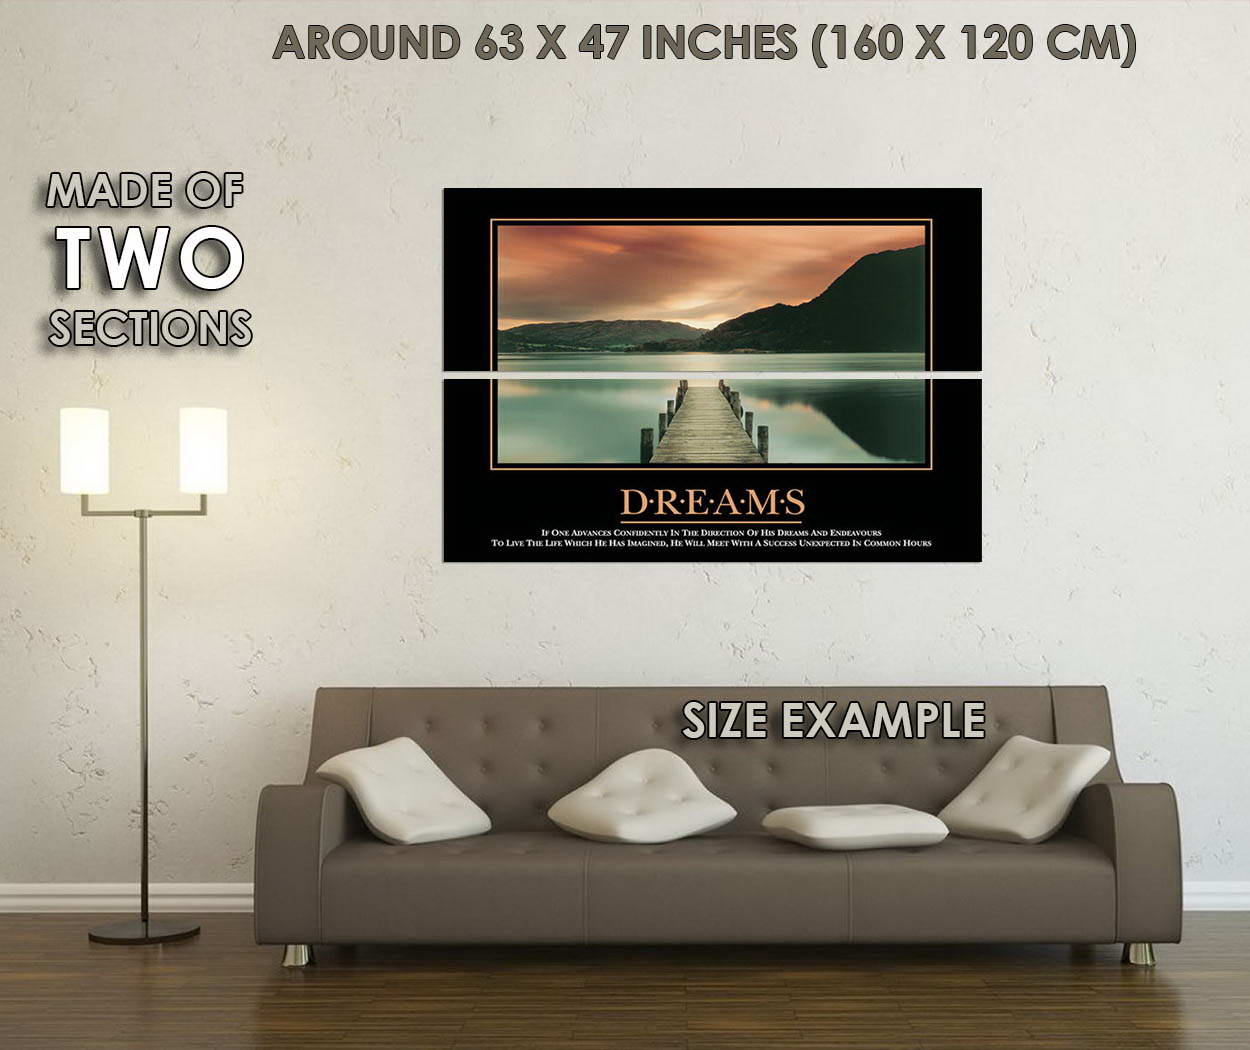 10580-DREAM-Motivational-Quote-Office-Room-LAMINATED-POSTER-CA thumbnail 6